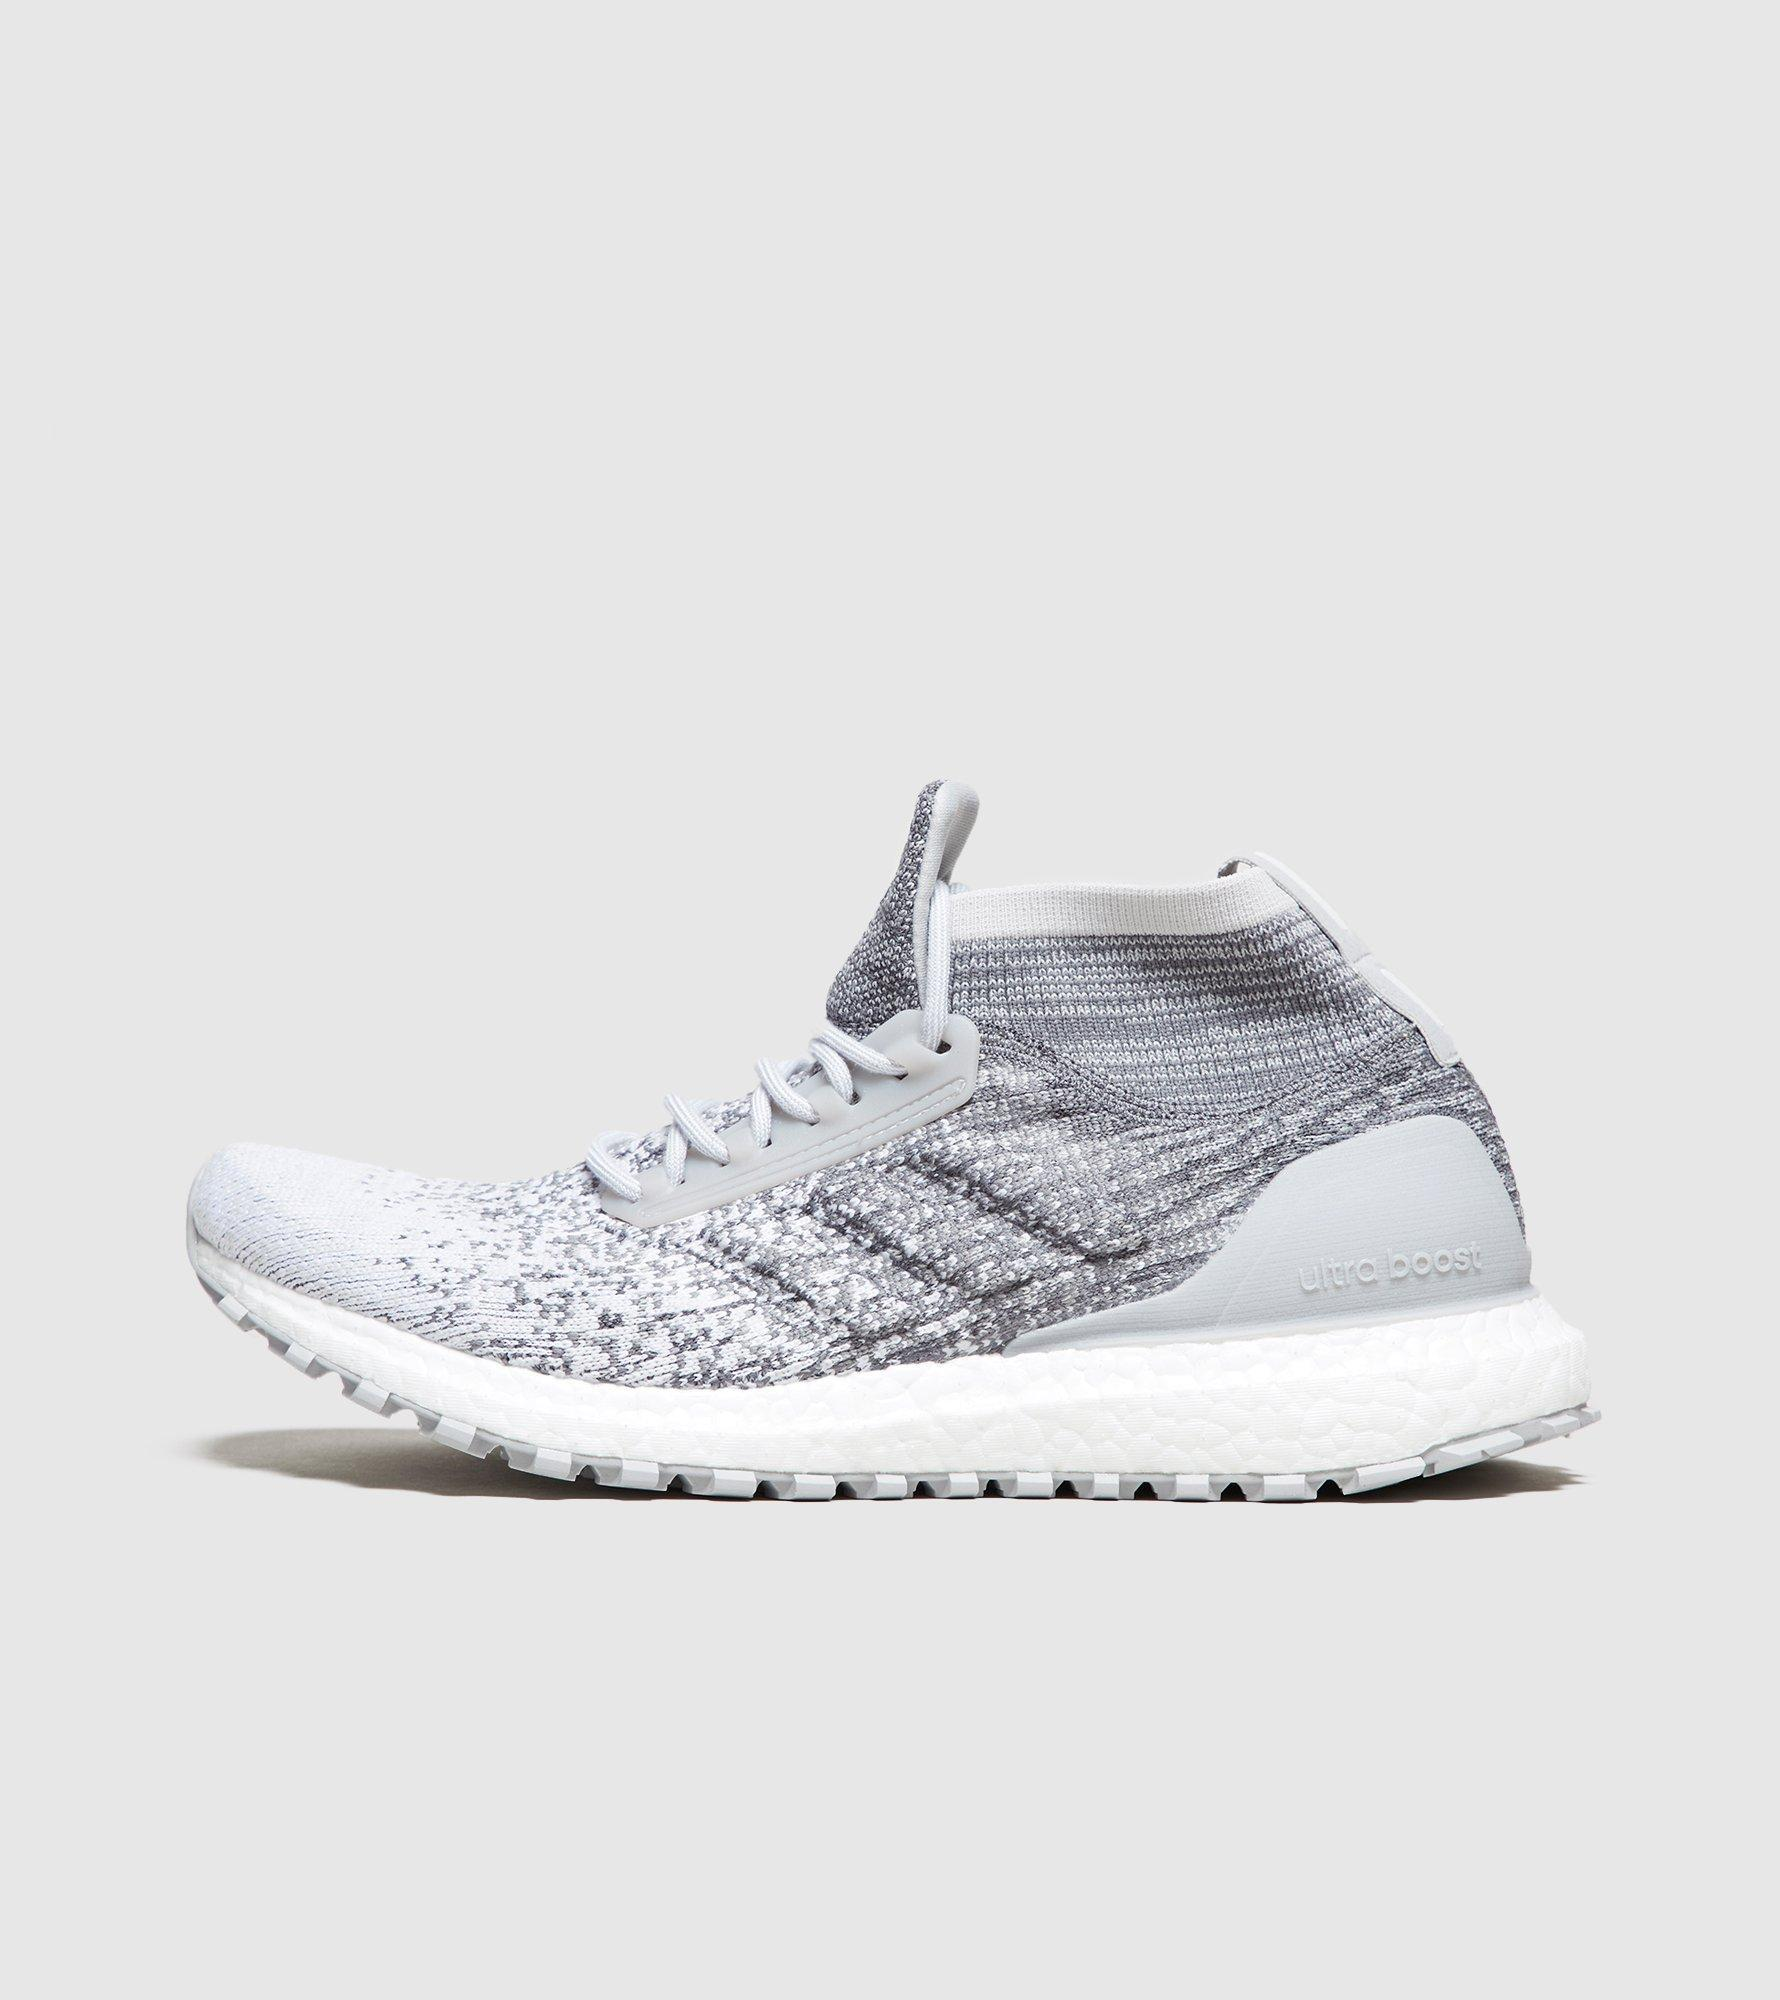 5b3a4e096fb71 ... aliexpress lyst adidas x reigning champ ultra boost atr in white for men  59956 441c4